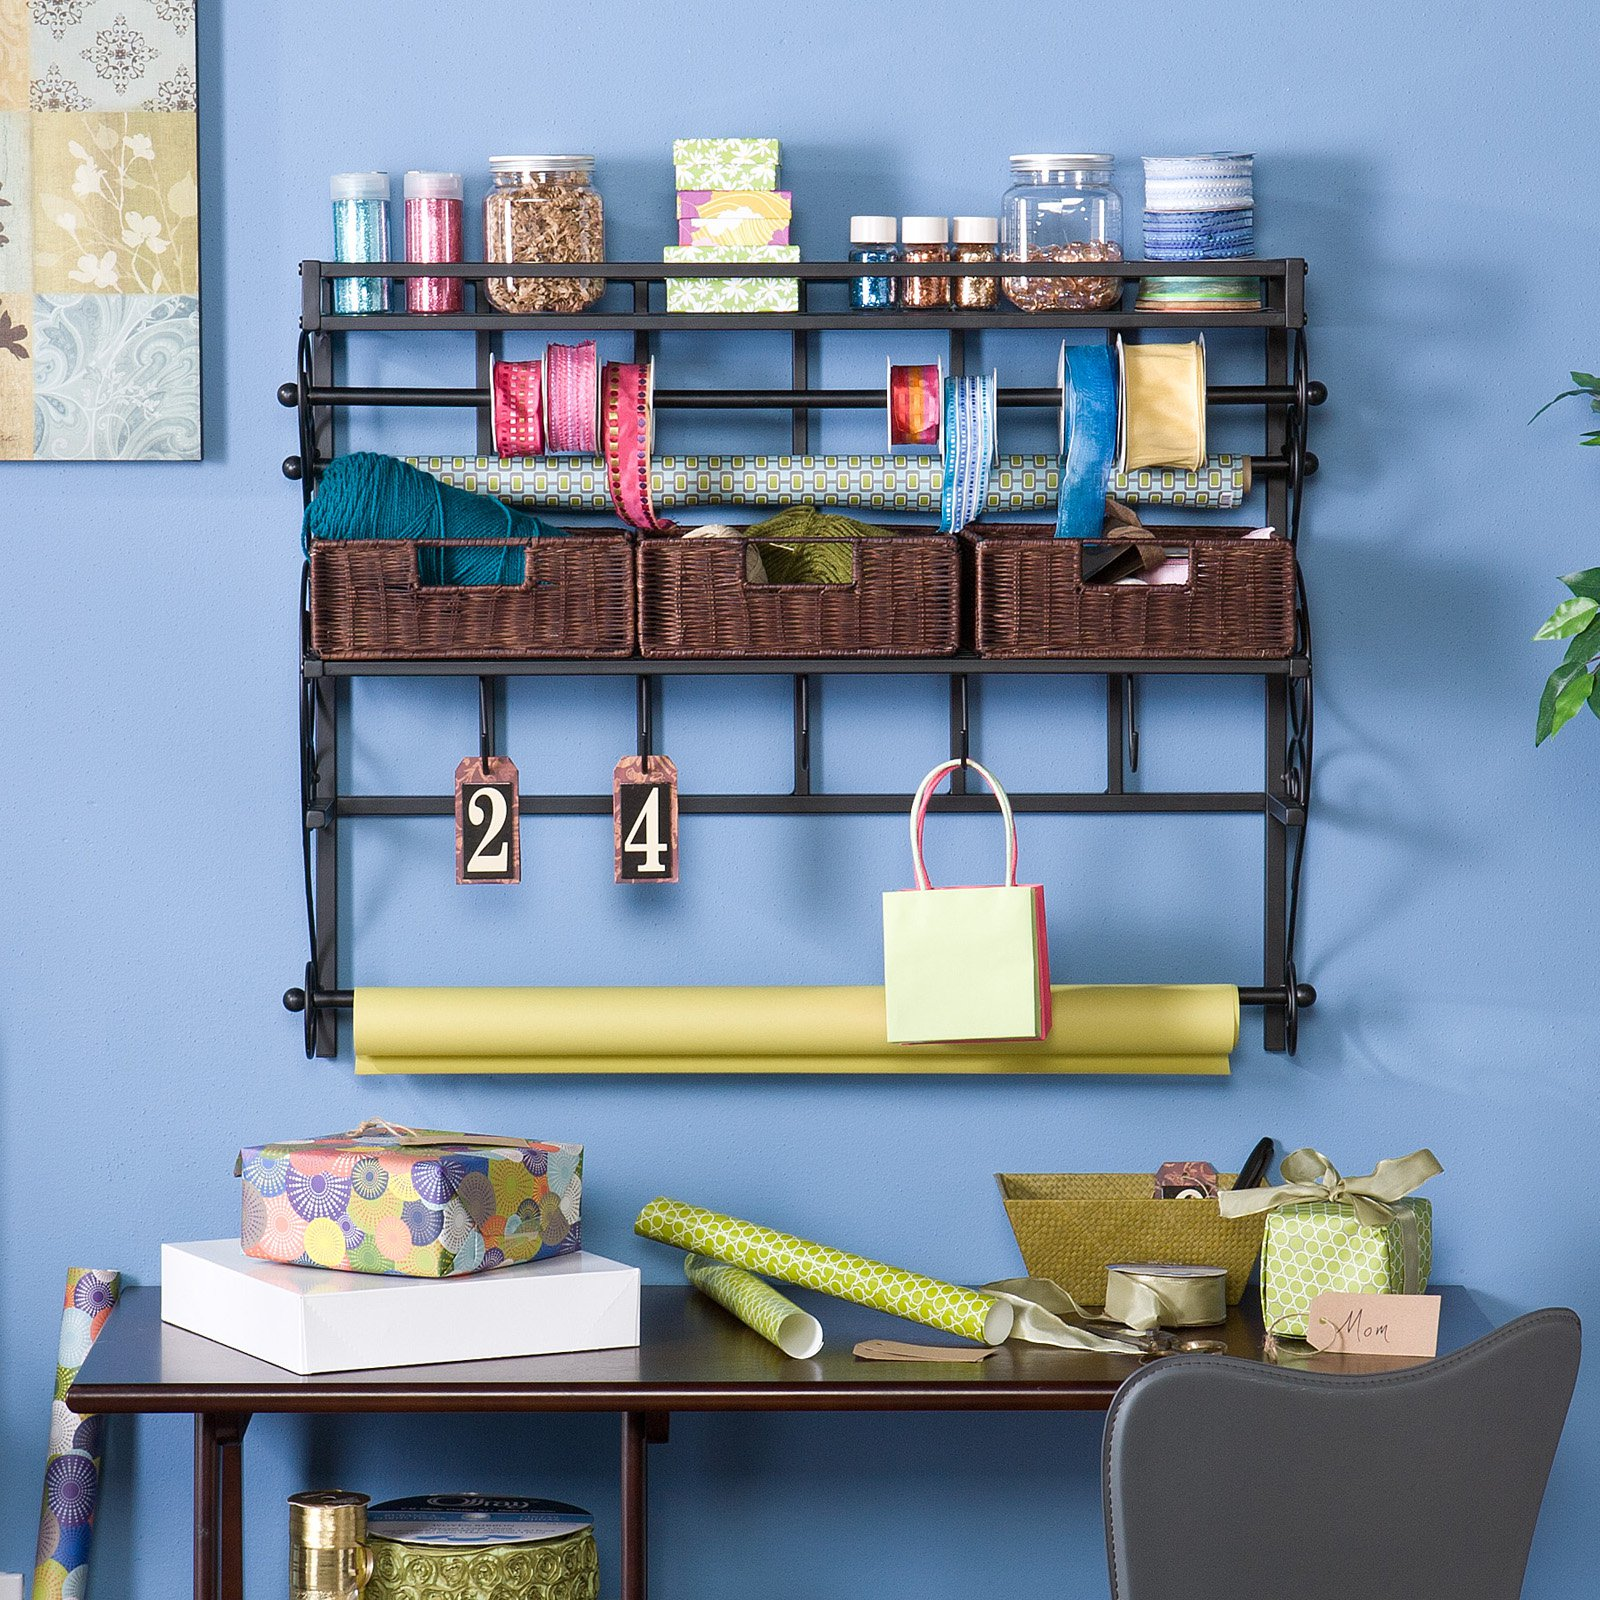 Wall Mount Craft Storage Rack with Baskets